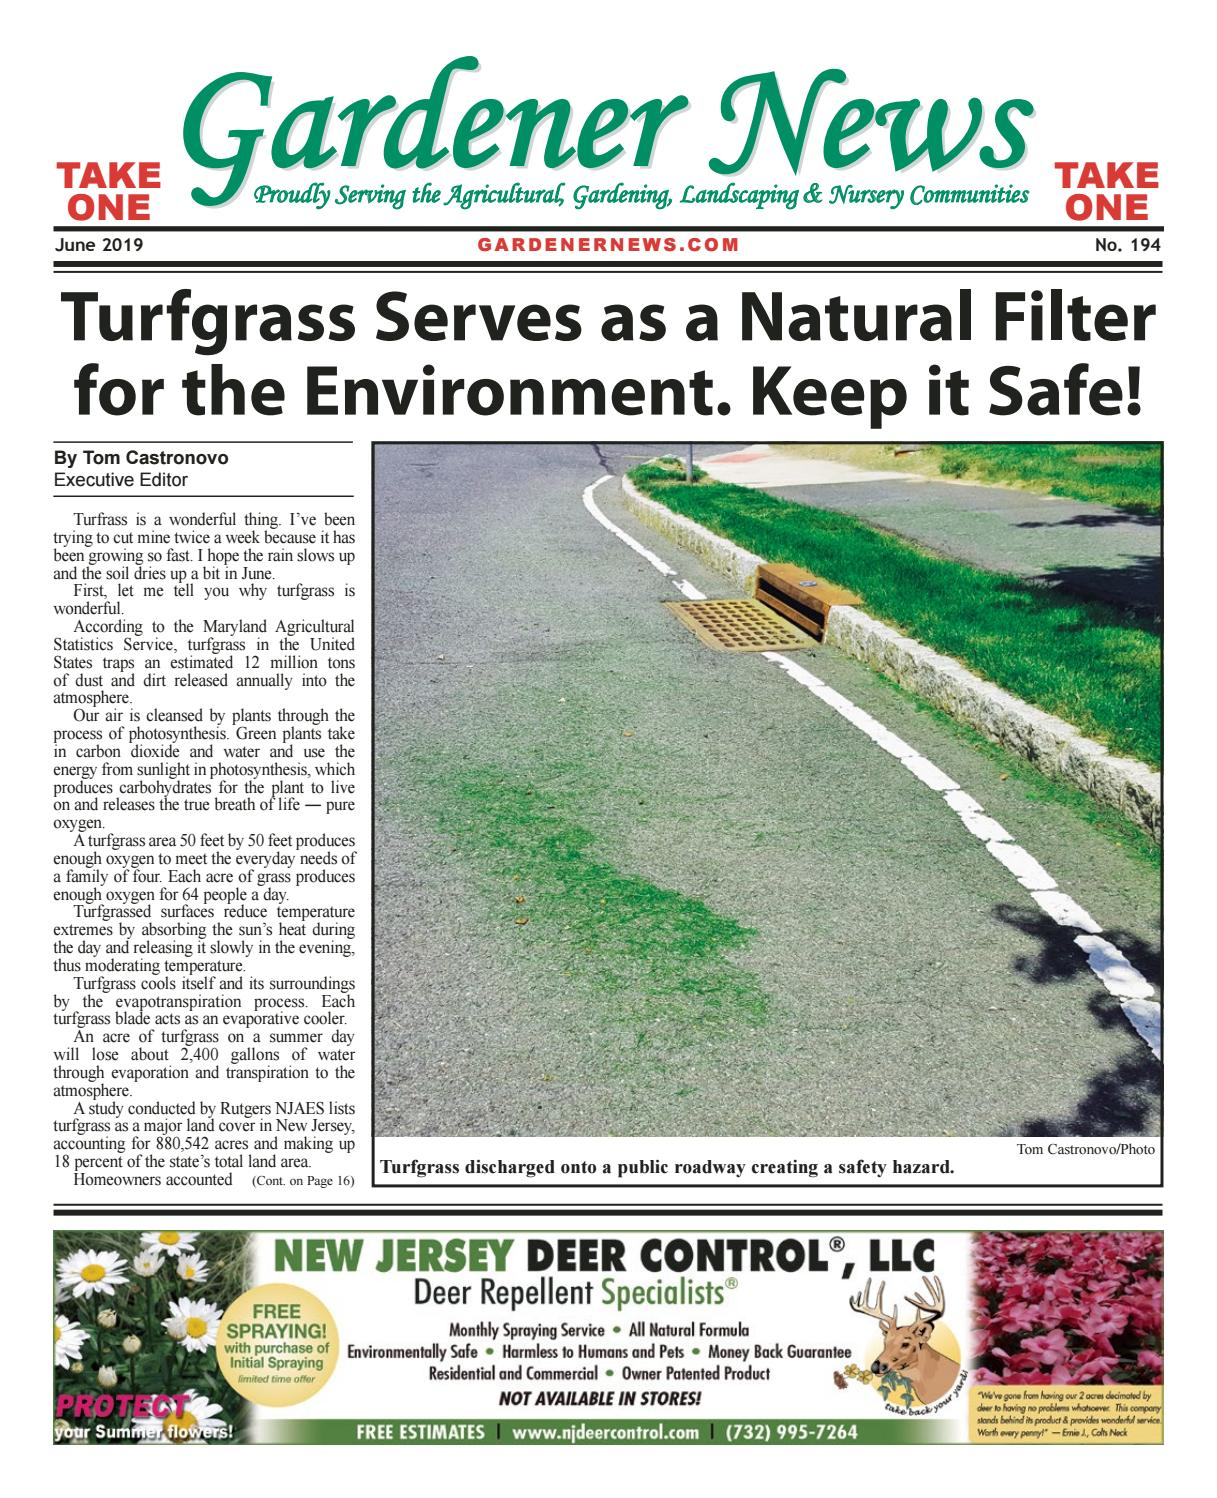 Gardener News June 2019 by Gardener News issuu